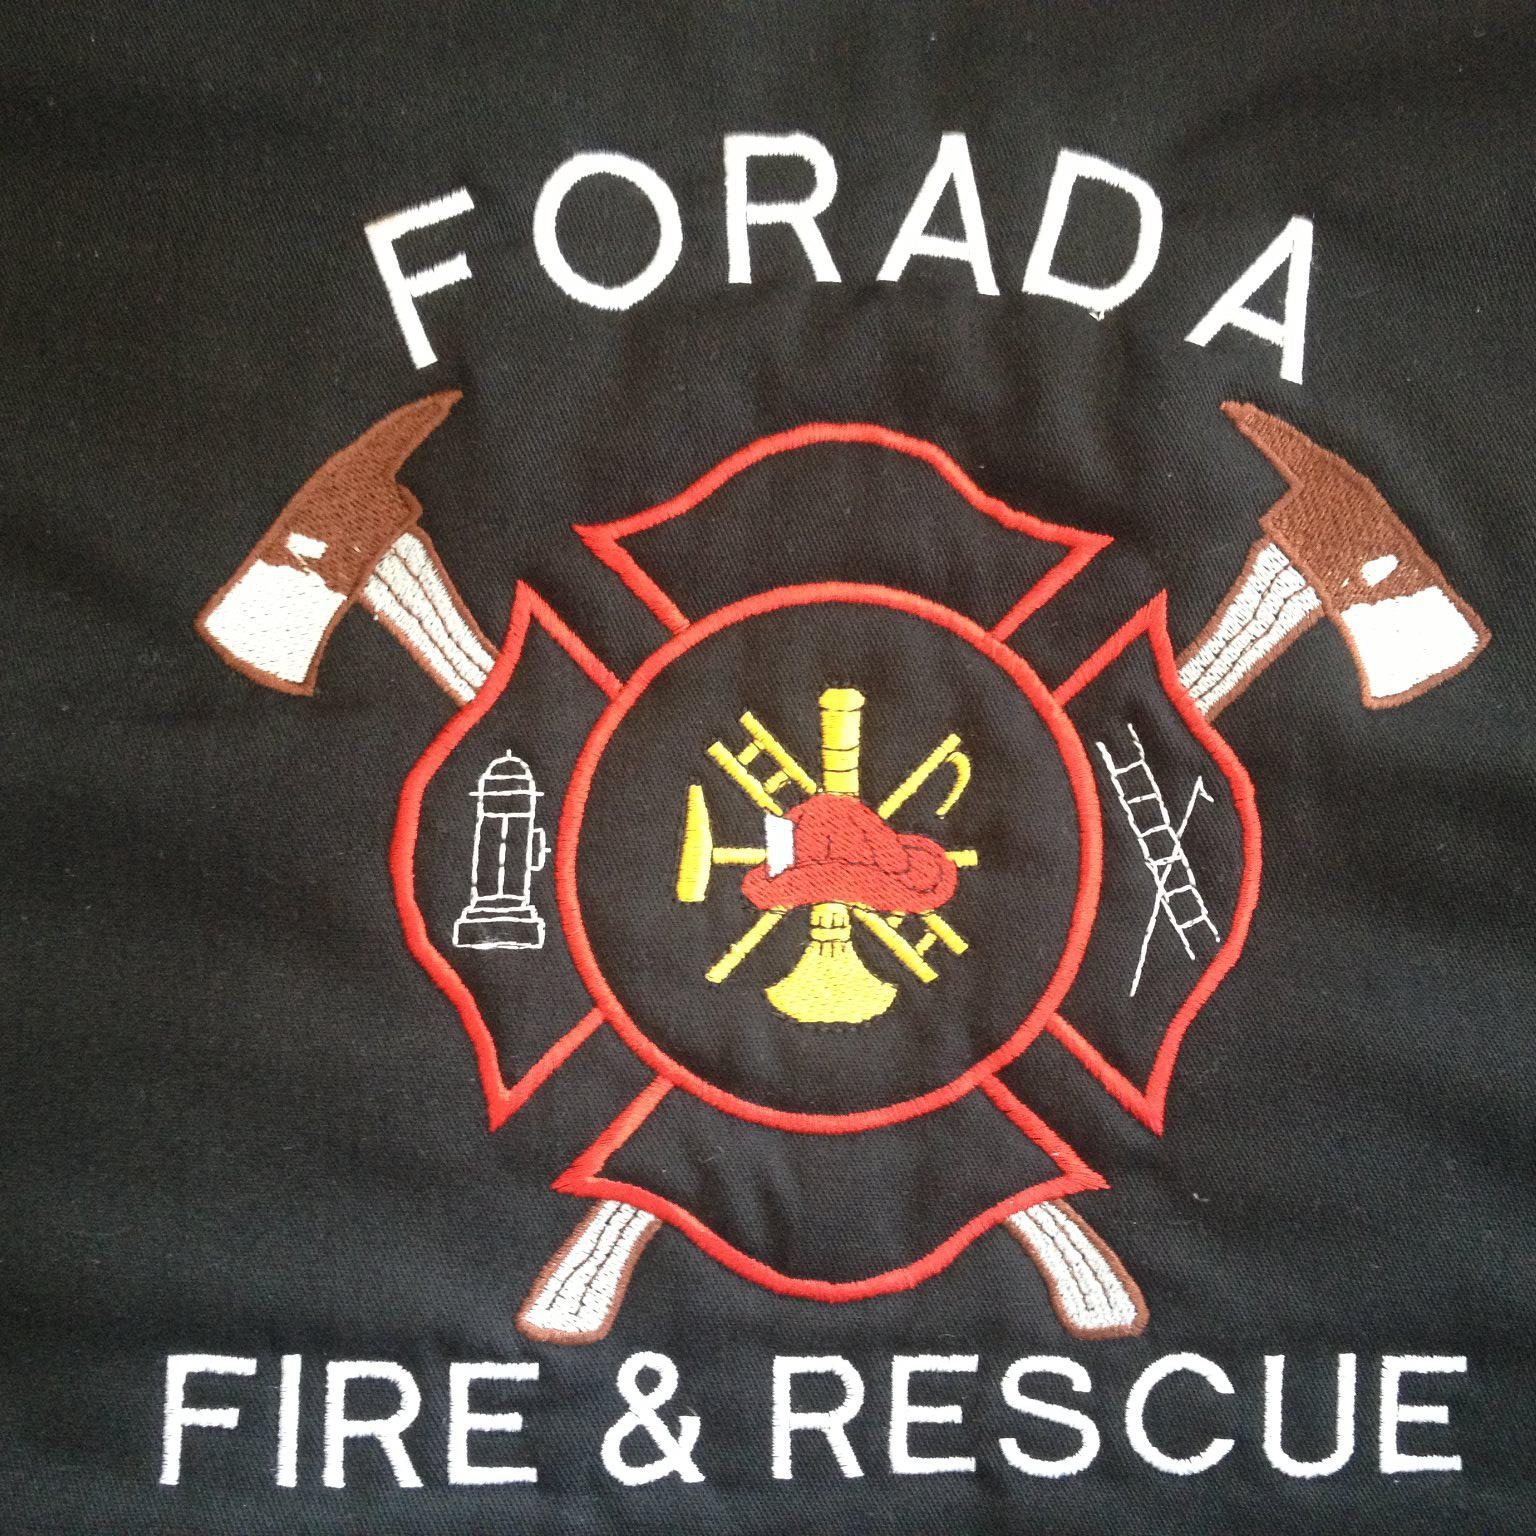 Forada Fire & Rescue